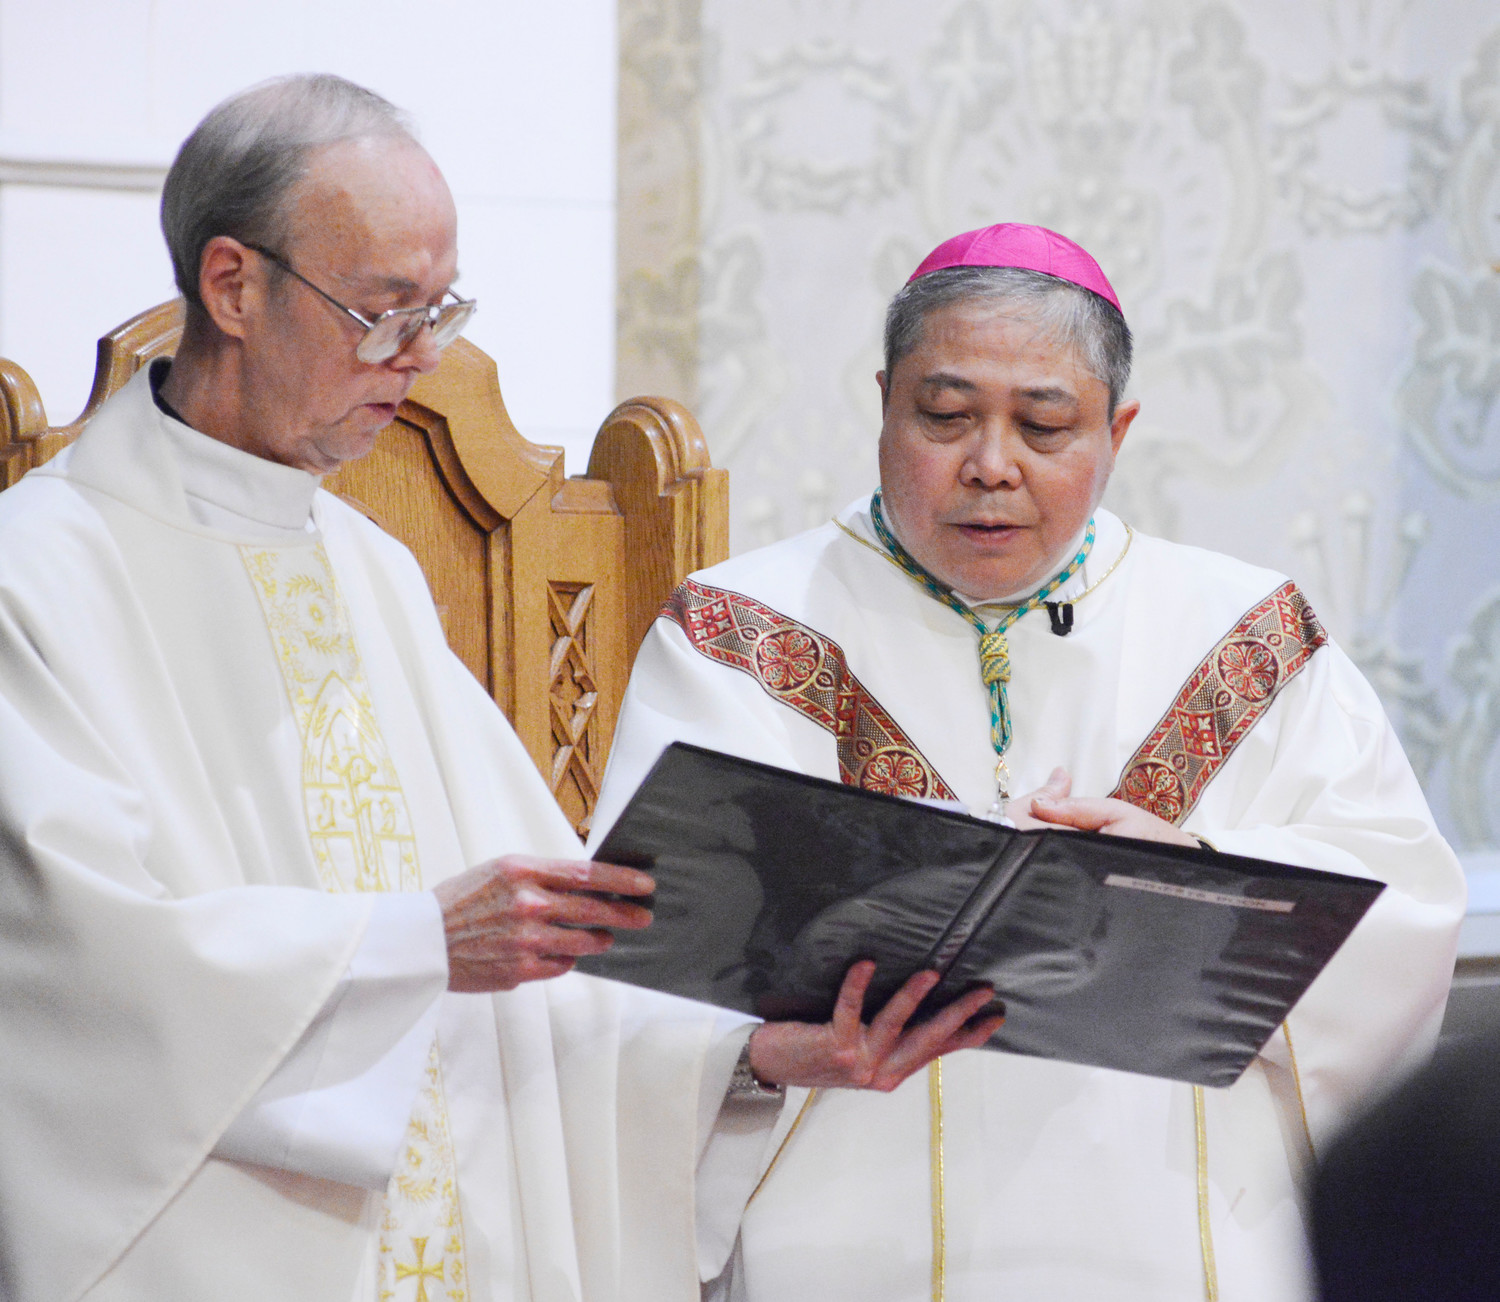 Archbishop Bernardito Auza, permanent observer of the Holy See to the United Nations, served as principal celebrant. Msgr. John Ferry, the parish pastor, to the archbishop's left, was a concelebrant.